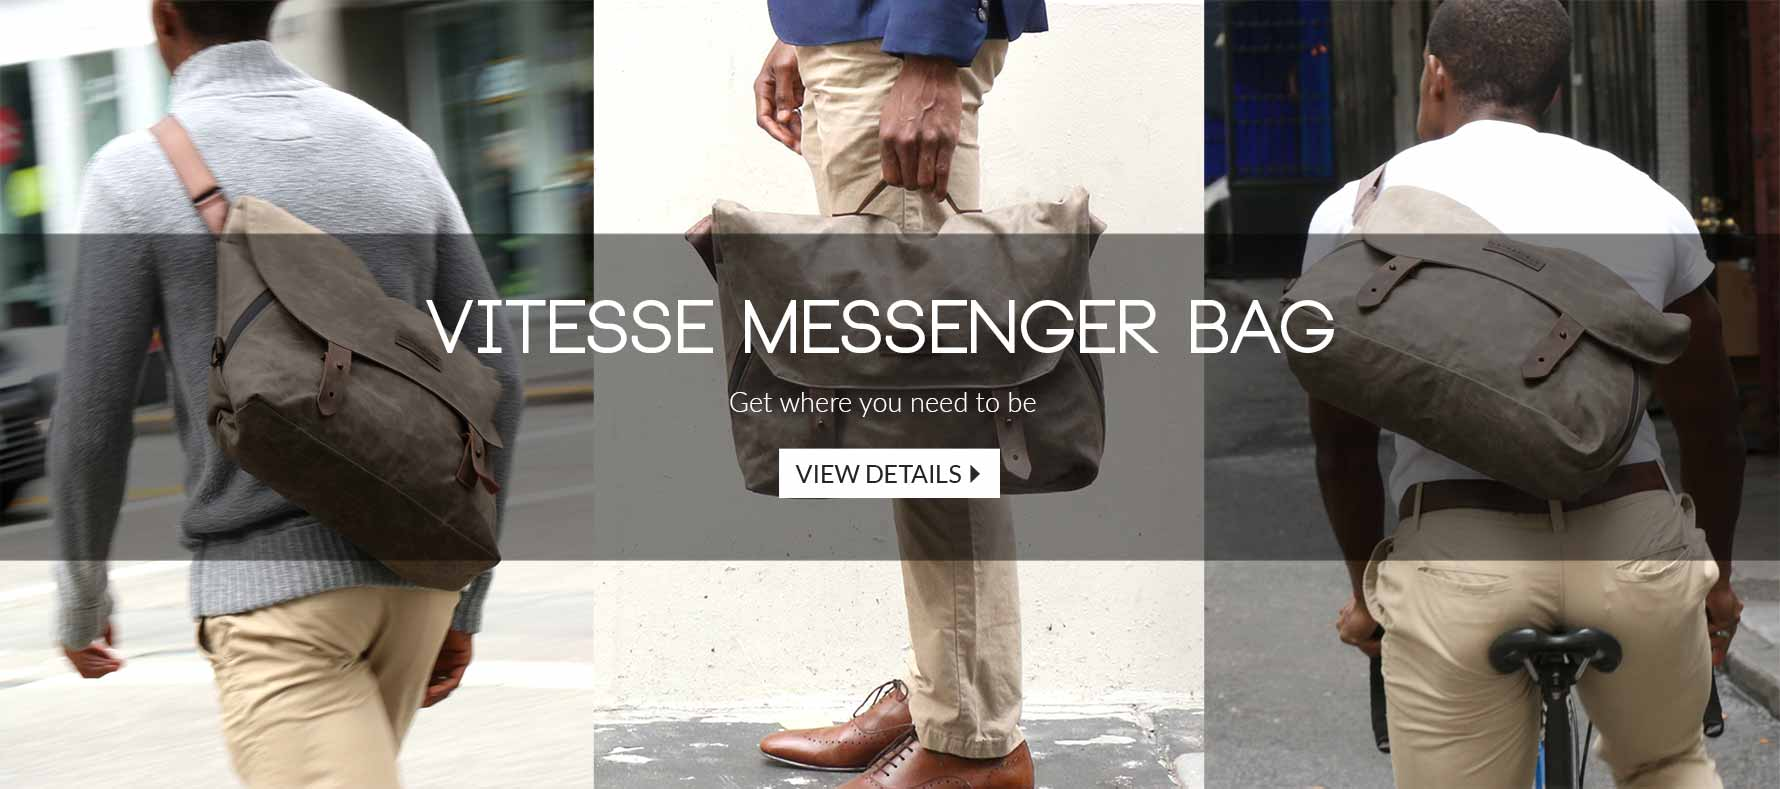 Get Where You Need to Be with the Vitesse Messenger Bag